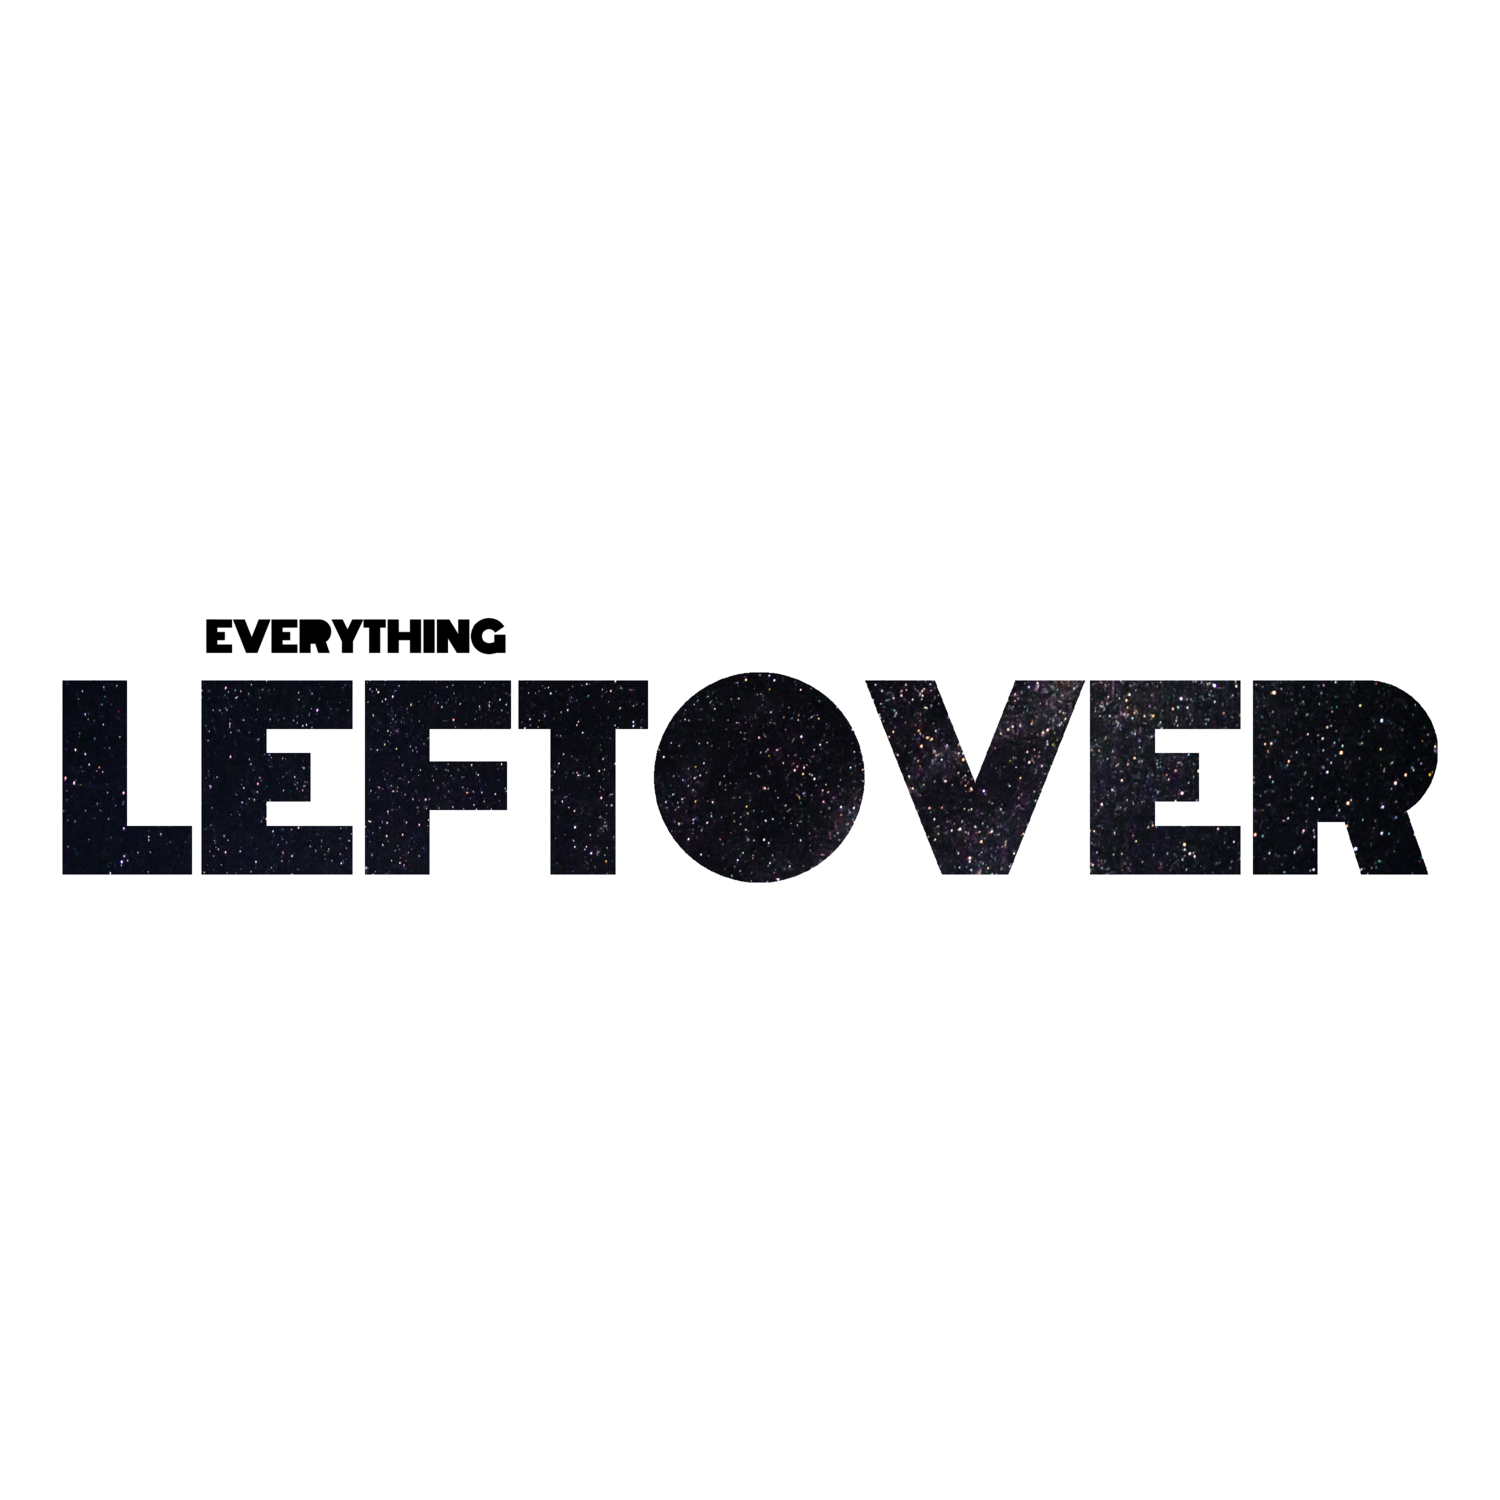 Everything Leftover: Examining HBO's The Leftovers Logo